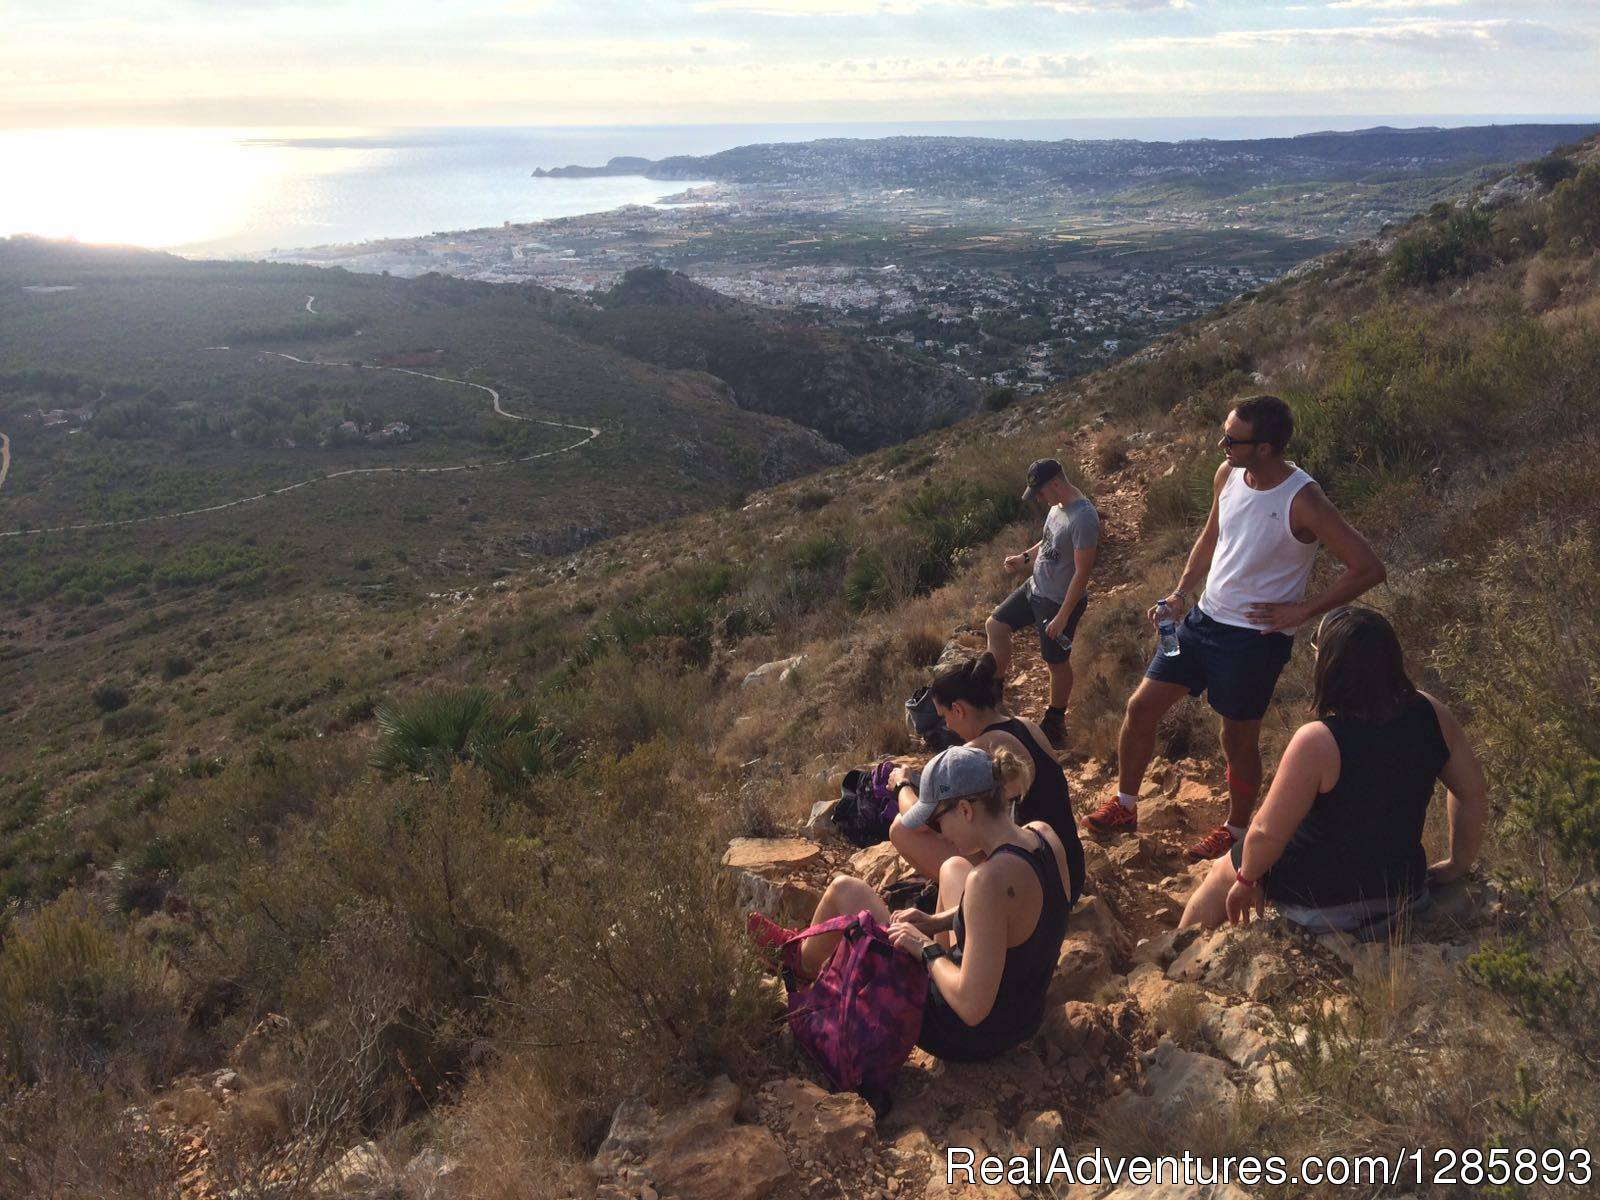 Stunning Hikes across the Costa Blanca